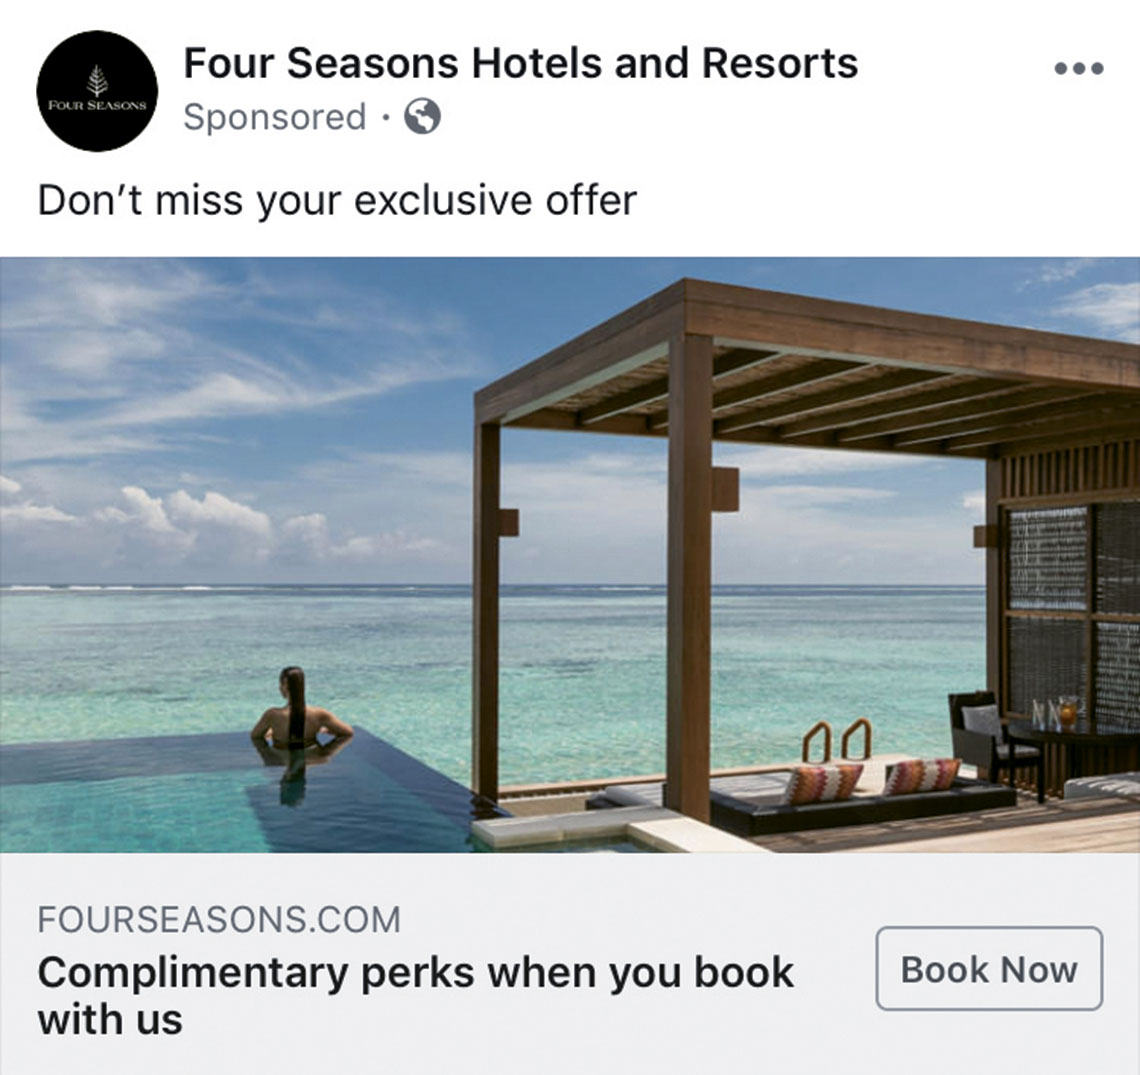 A screenshot of one of Four Seasons' social media ads touting perks when booking direct.